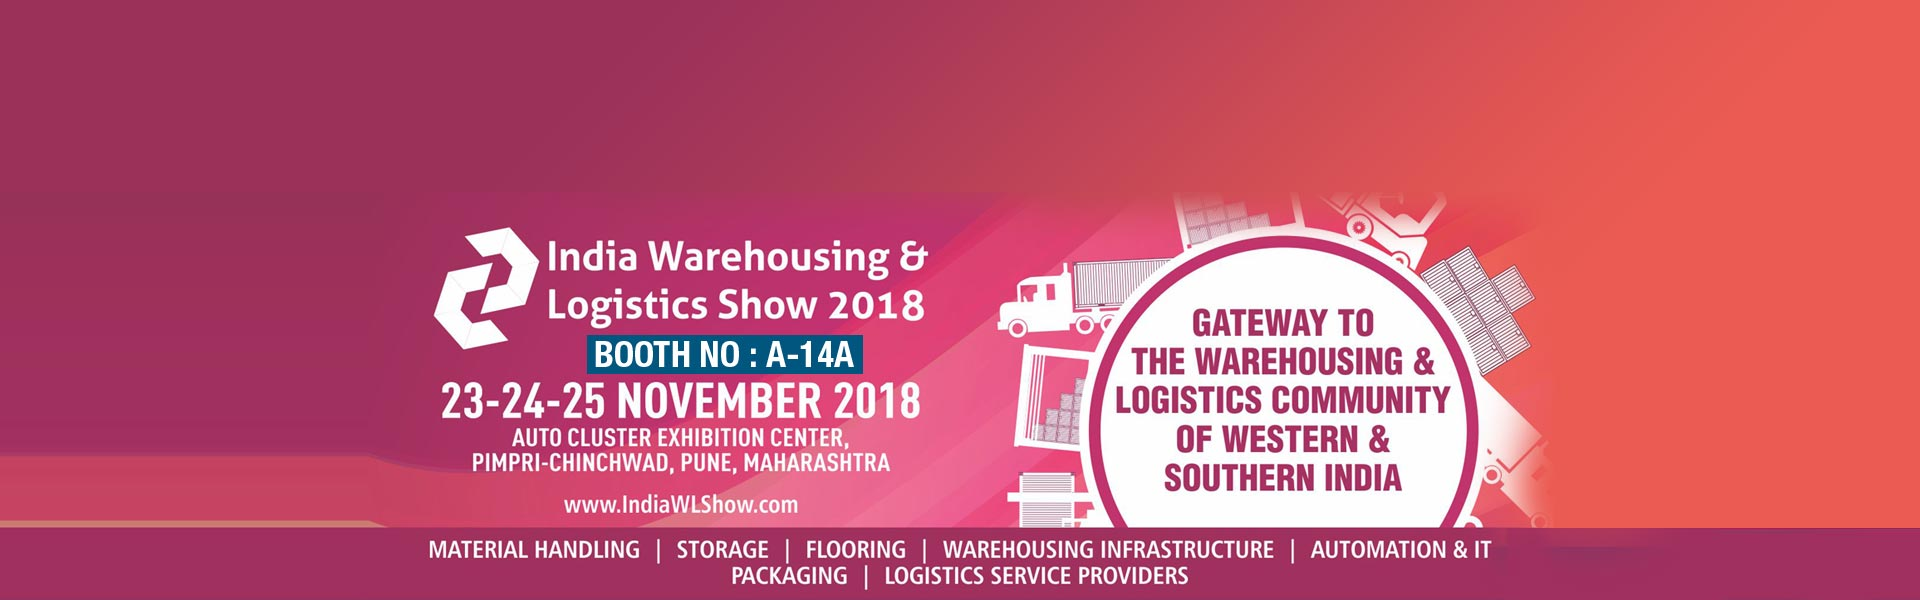 Agaram at India Warehousing and Logistics Show 2018